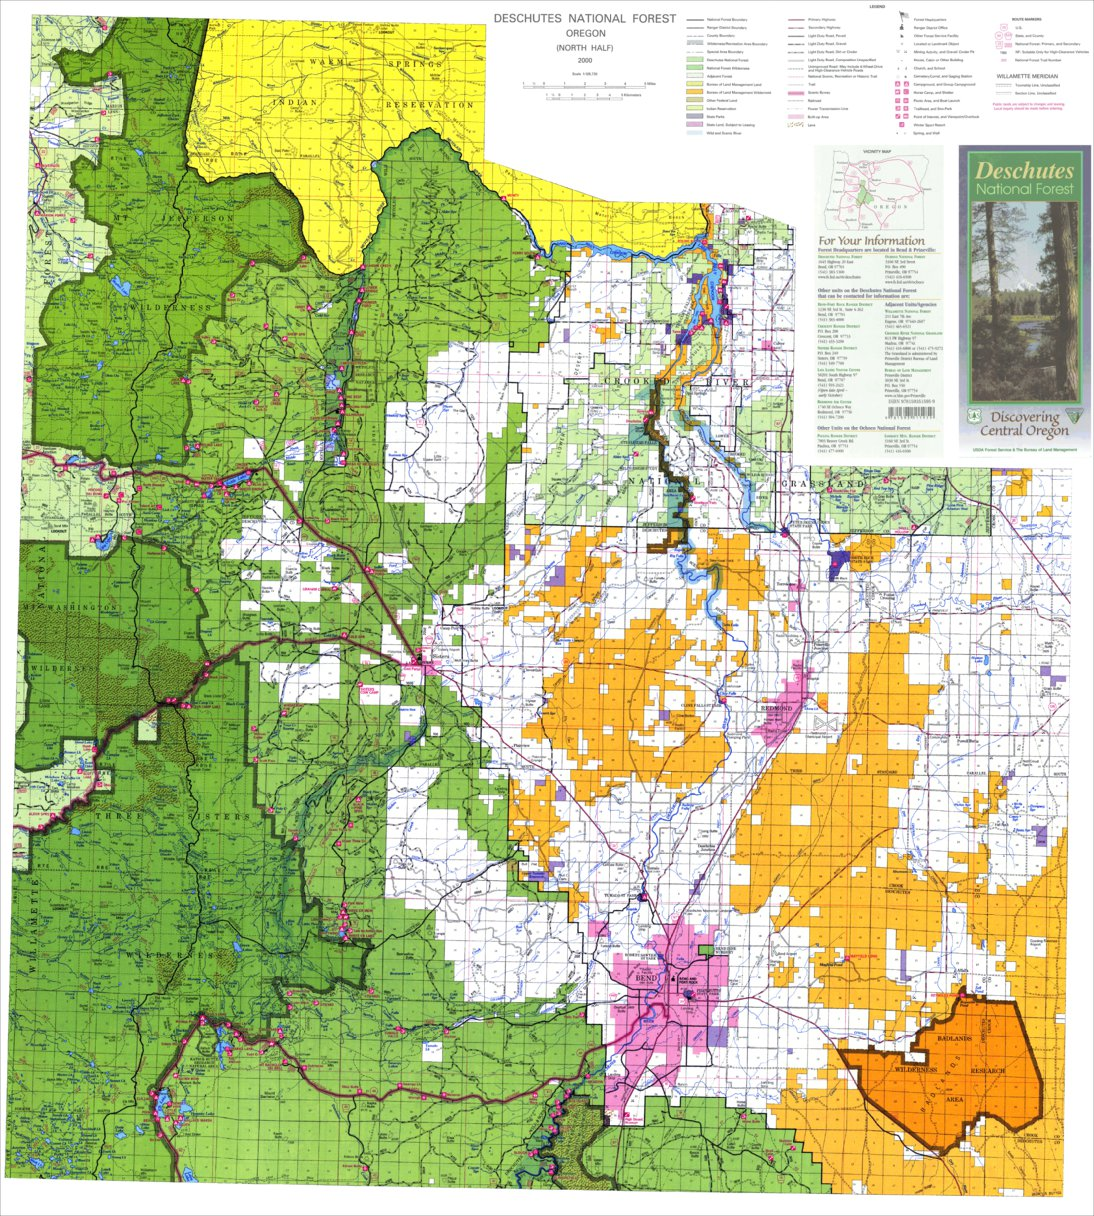 Deschutes National Forest Visitor Map North - US Forest Service R6 on